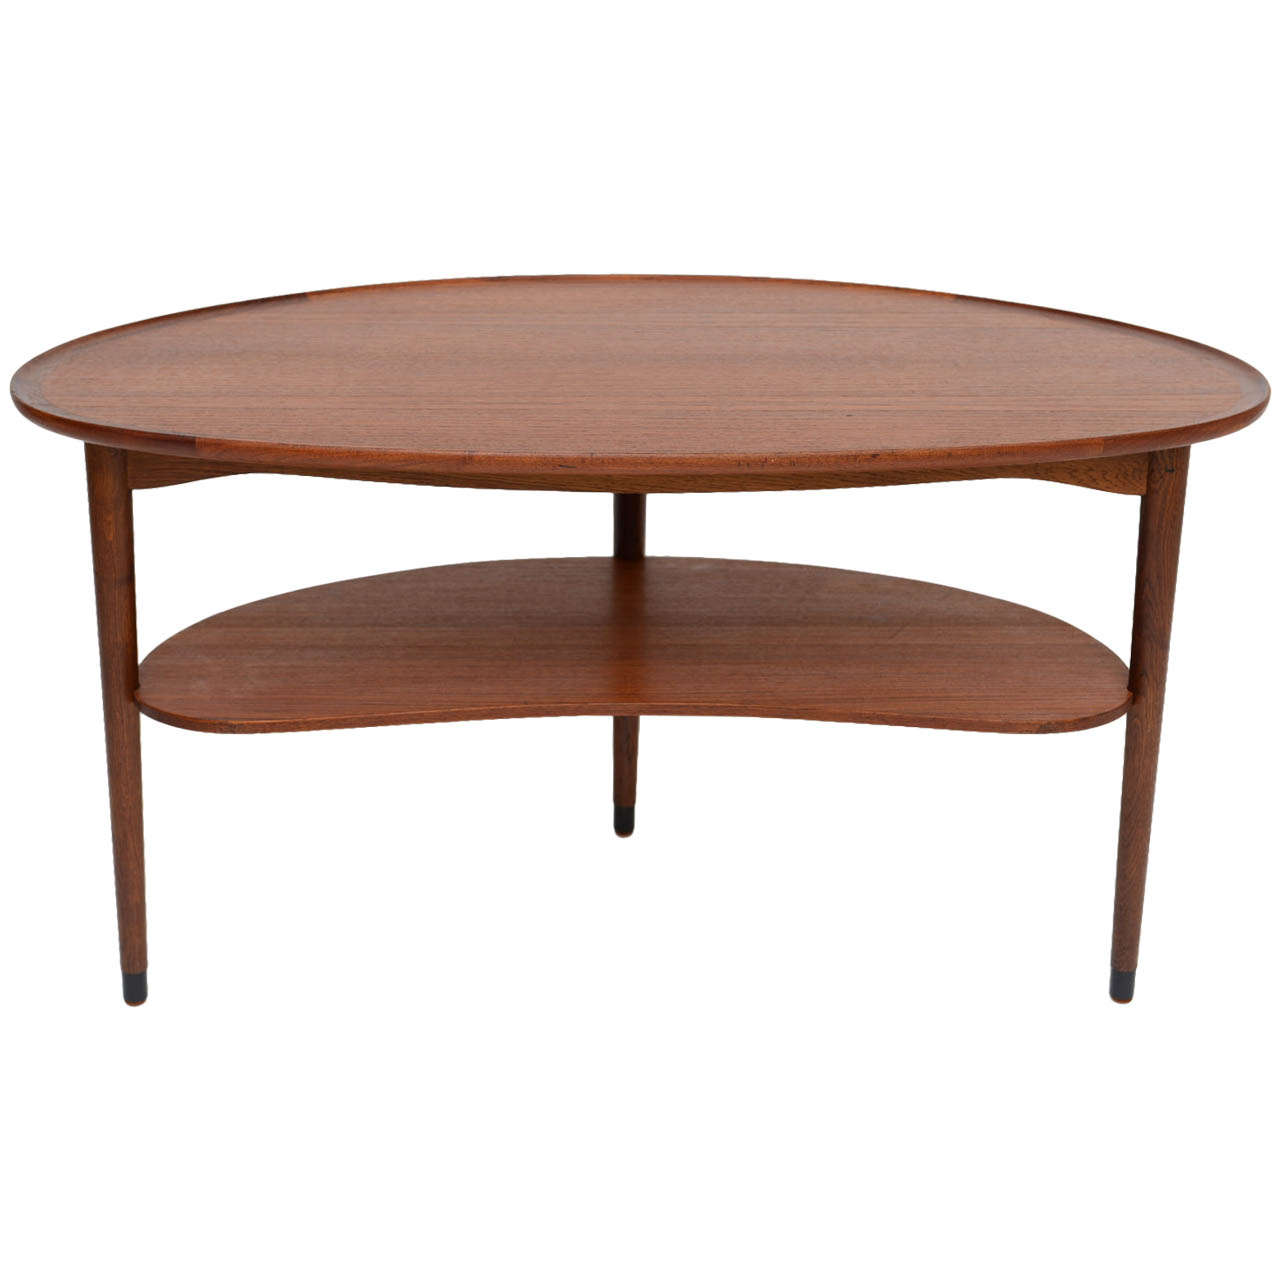 Fine Danish Teak Scallop Edge Kidney Shape Coffee Table At 1stdibs